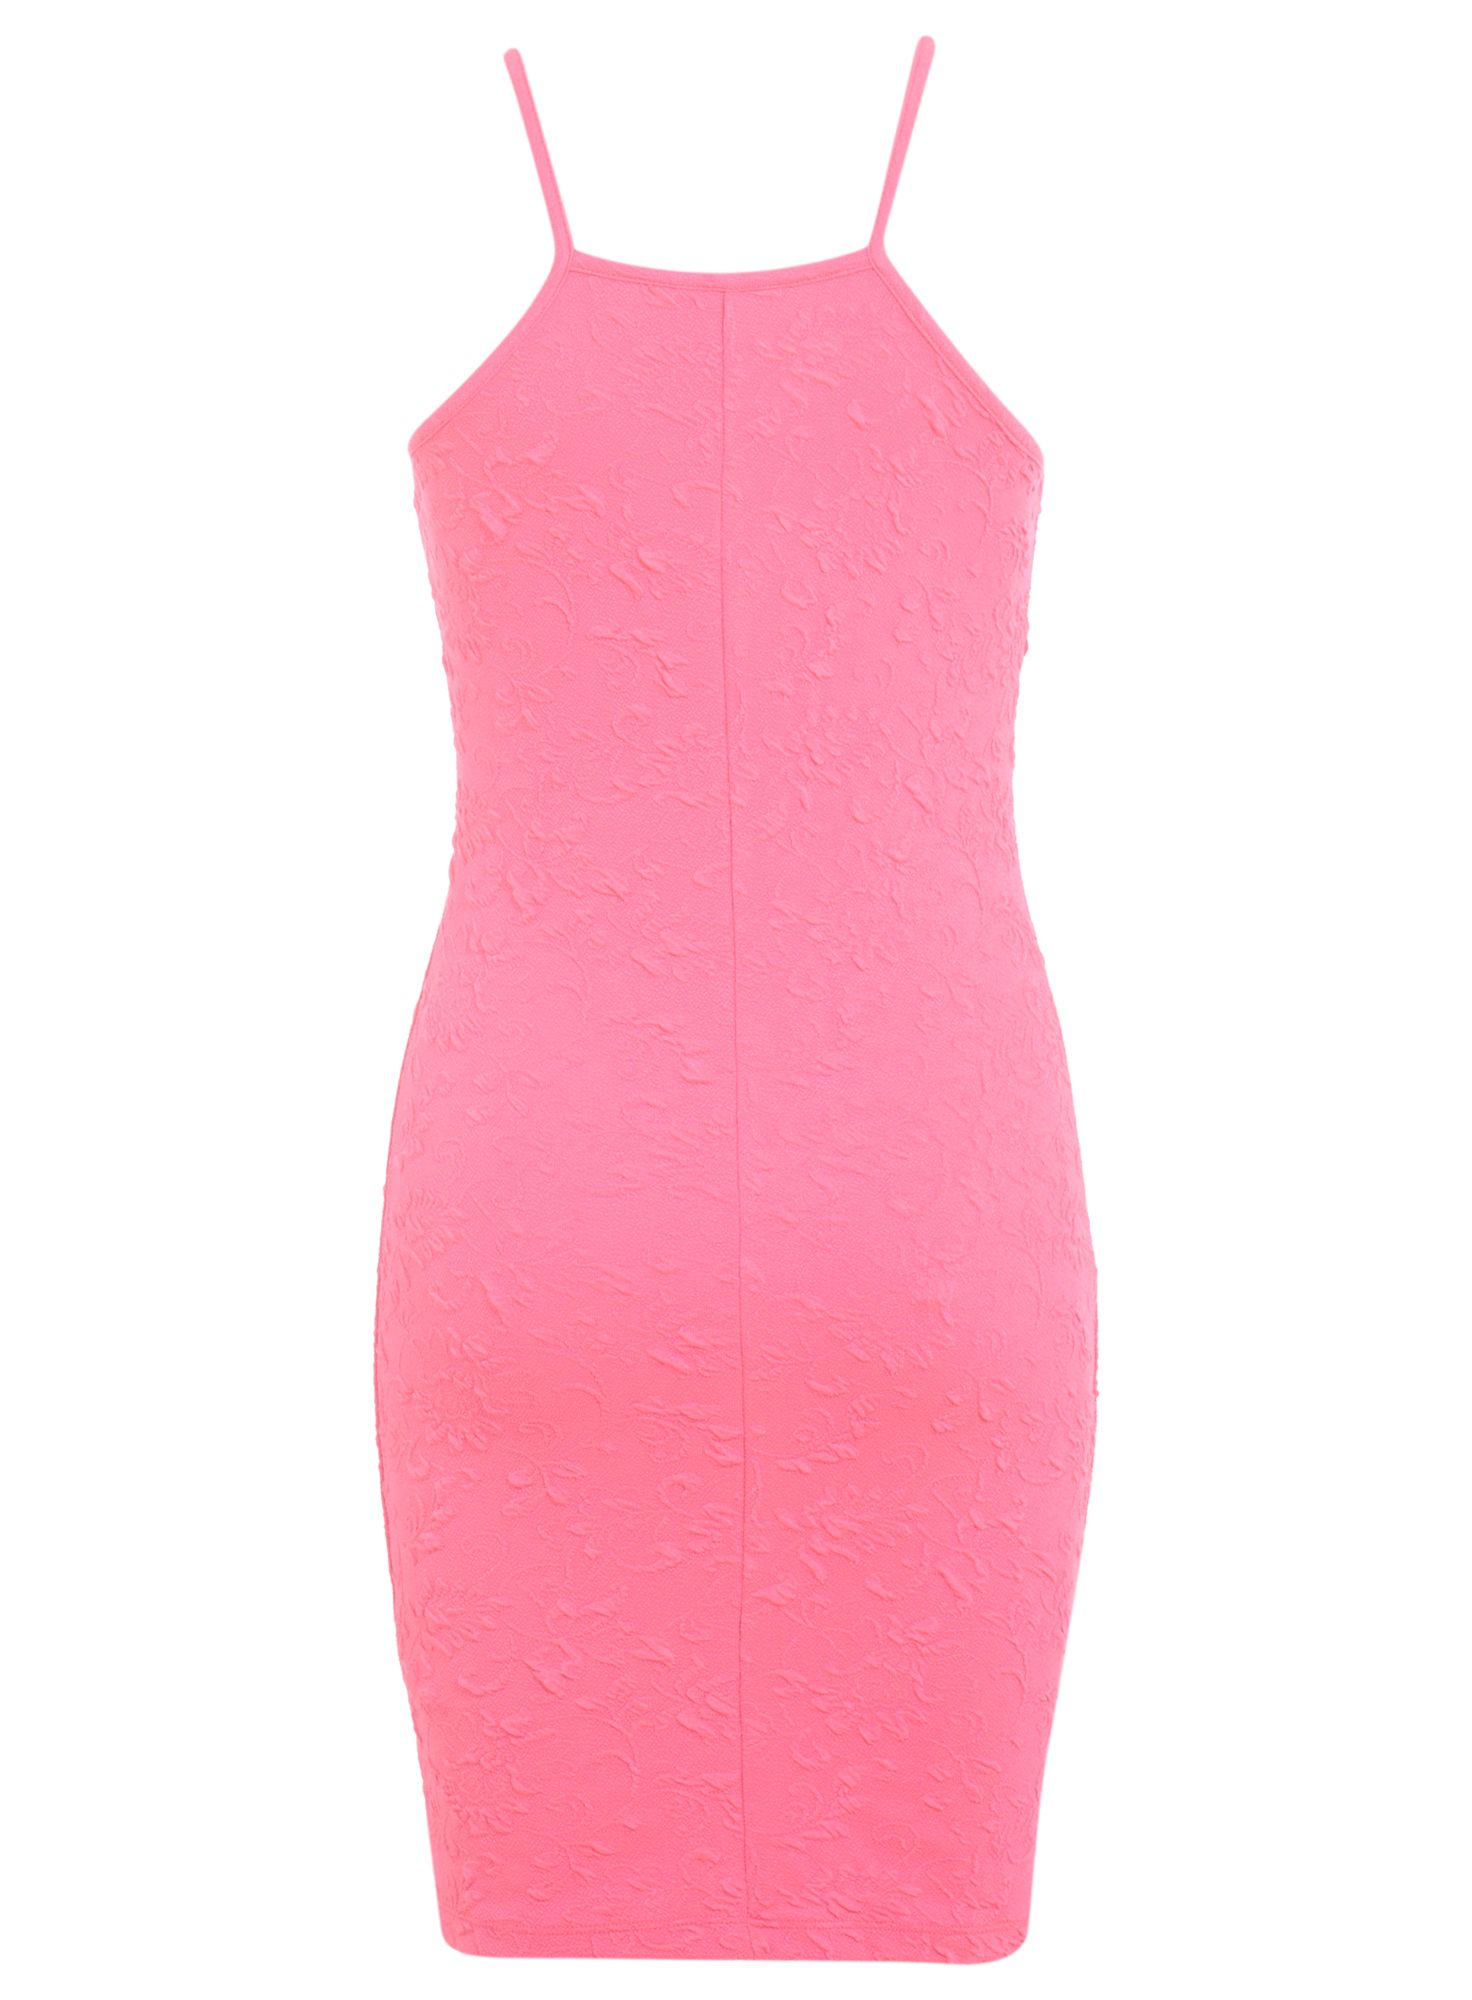 Petites pink 90s bodycon dress